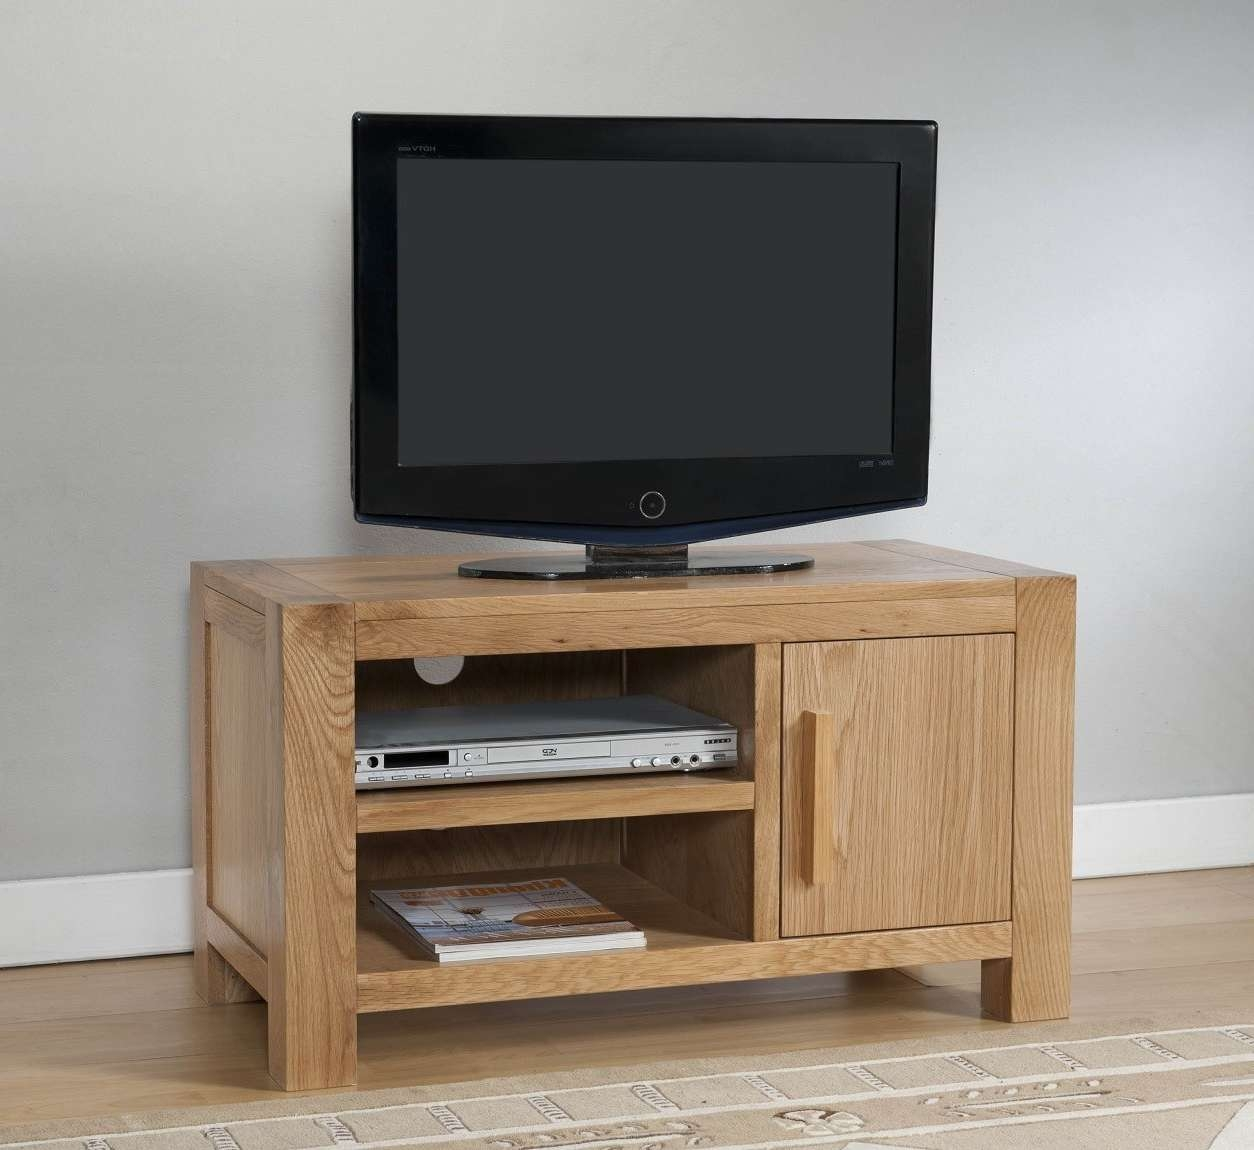 Aylesbury Contemporary Light Oak Small Tv Unit | Oak Furniture Uk Intended For Small Oak Tv Cabinets (View 15 of 20)